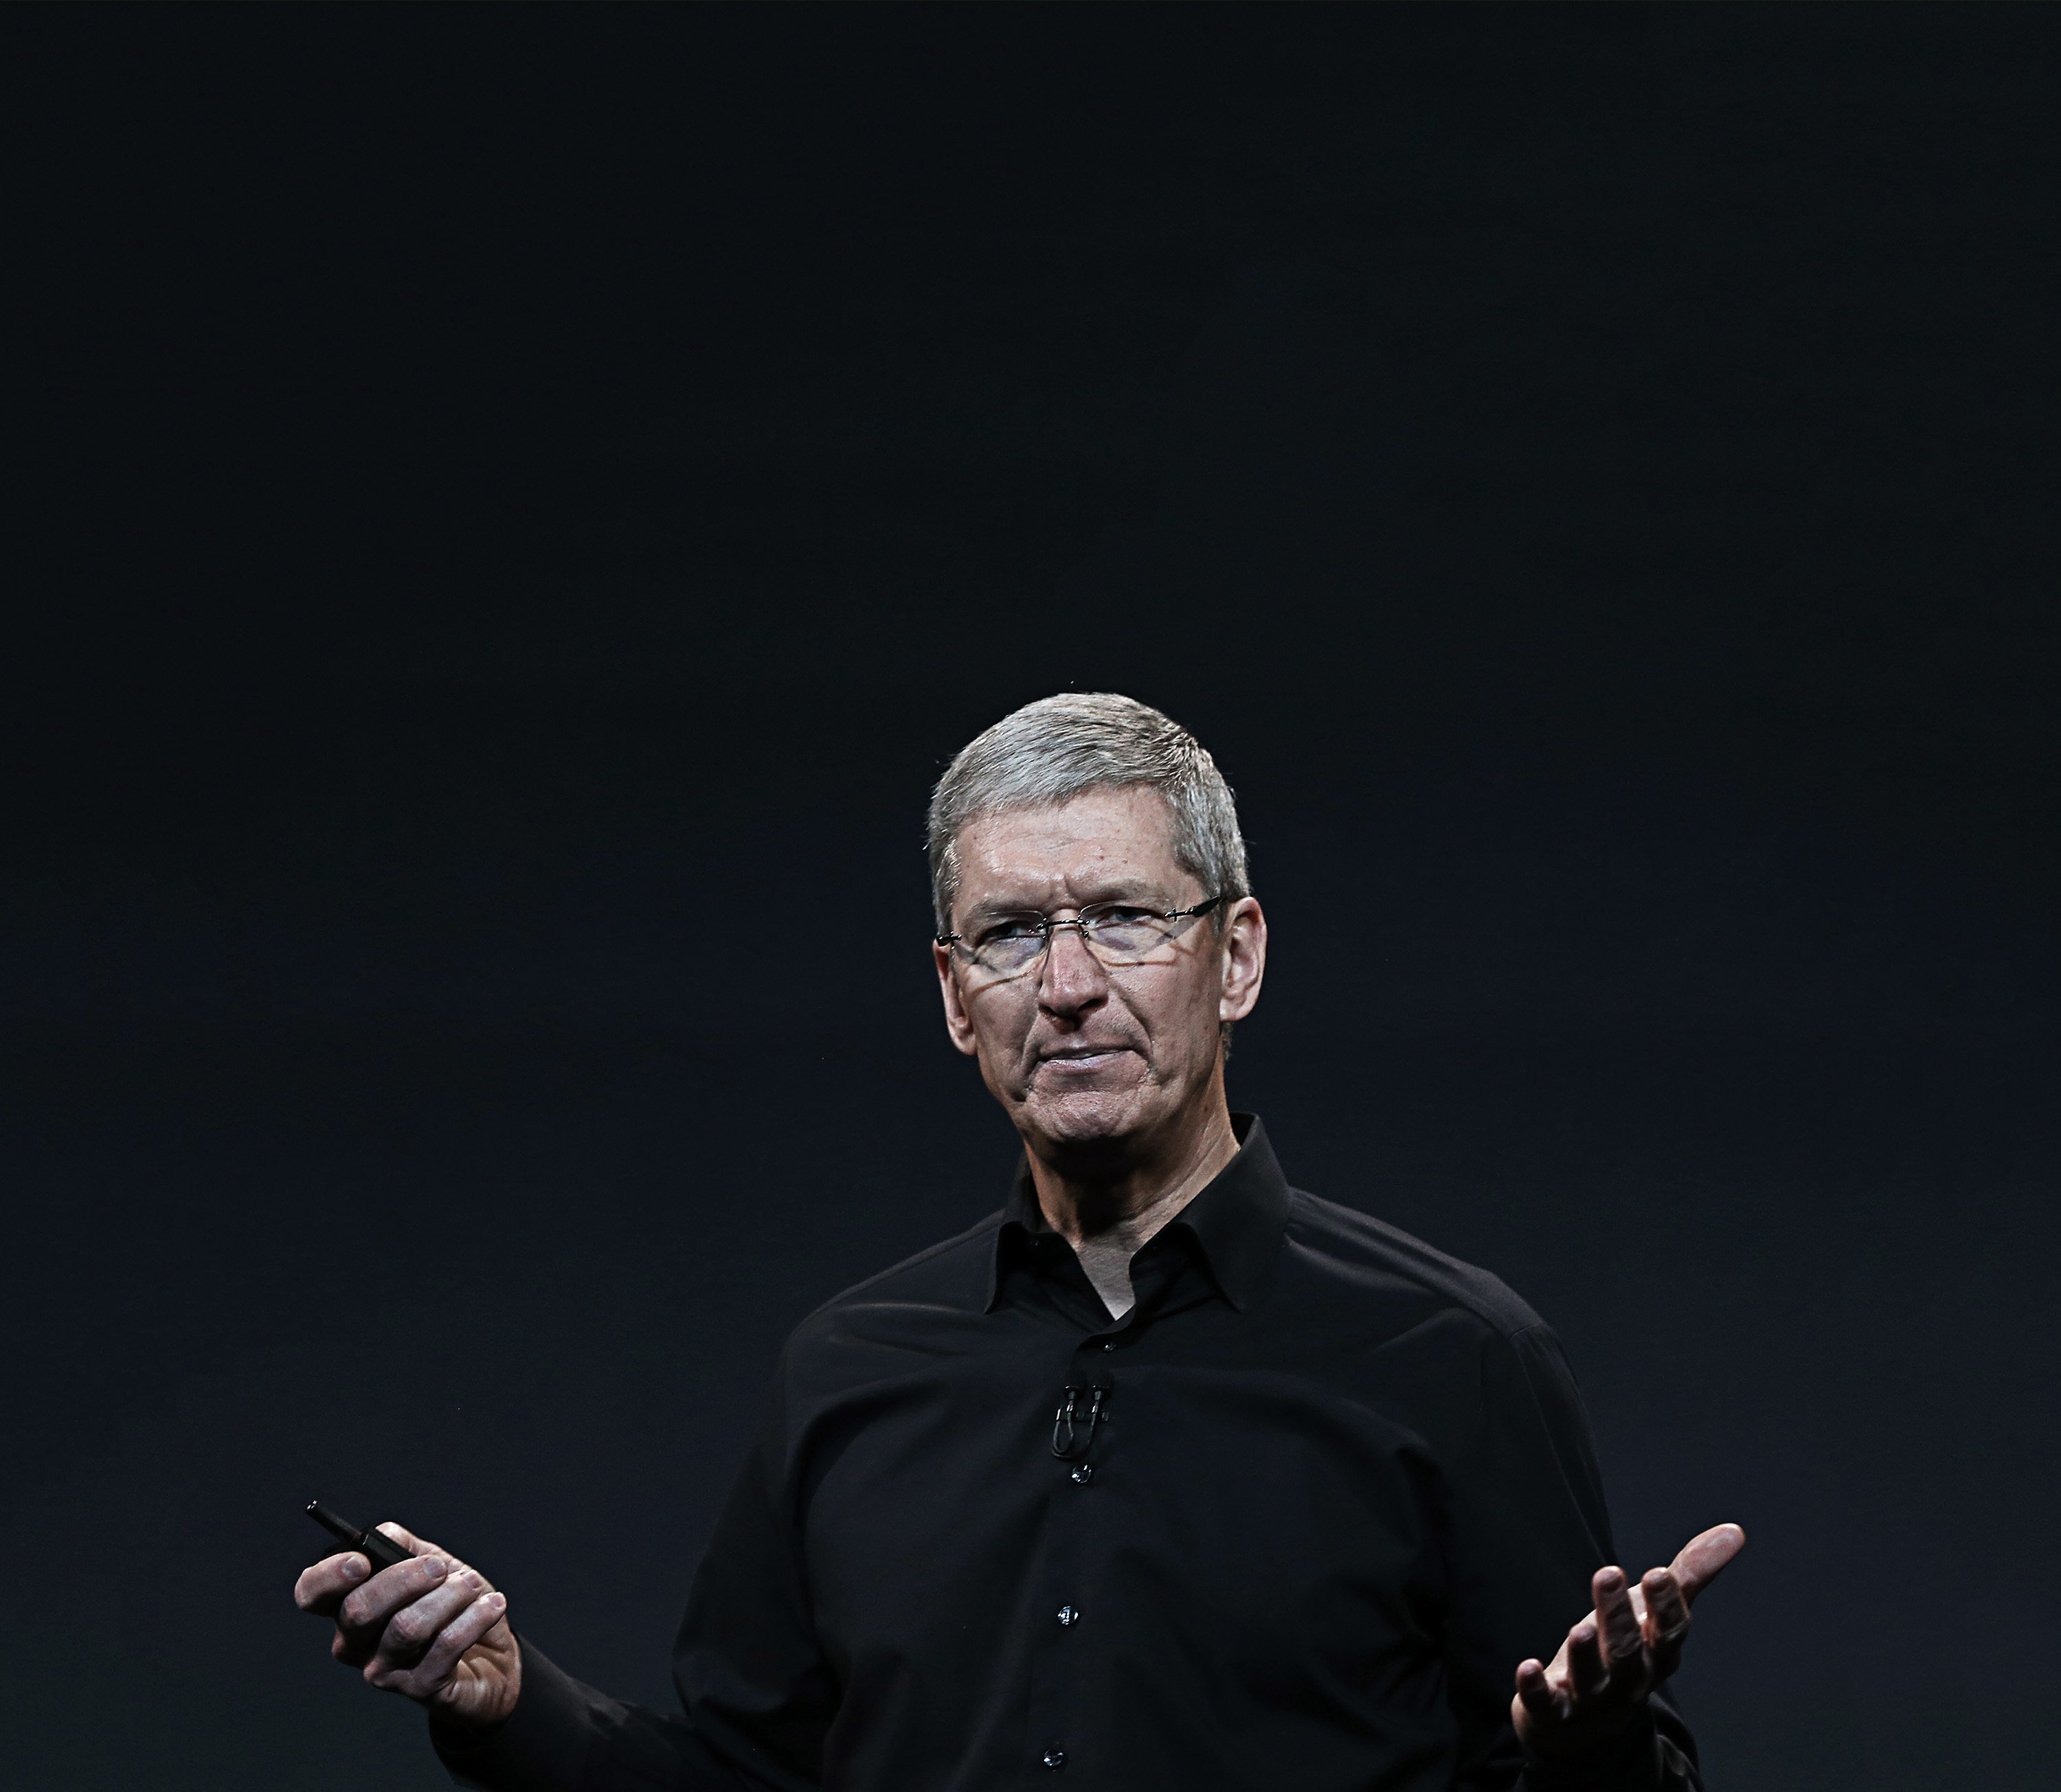 Tim Cook says Apple's customers are not its product, unlike Facebook